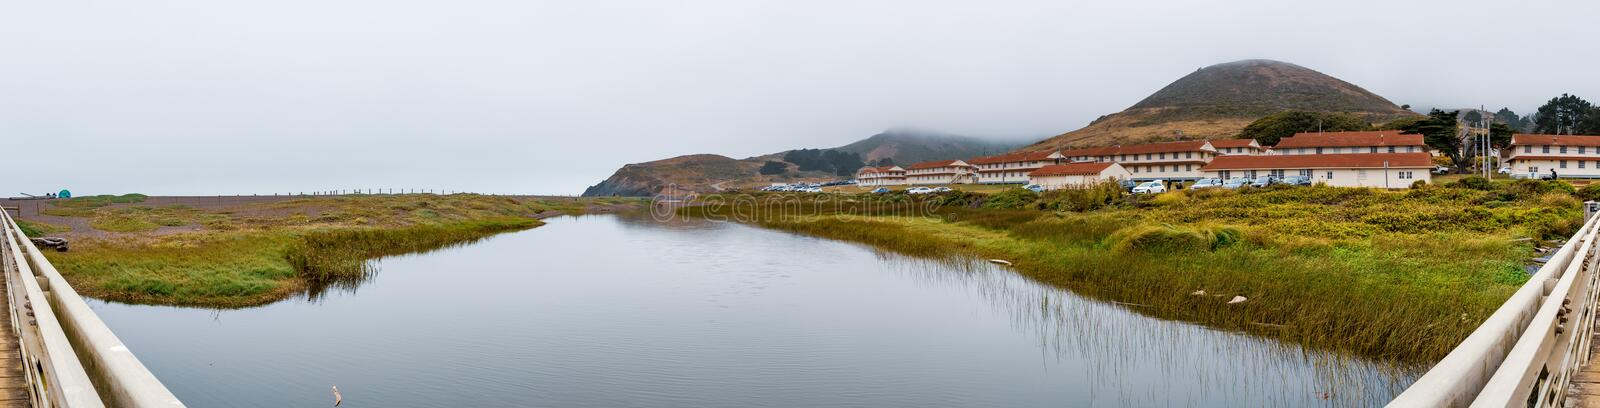 Rodeo Lagoon and Fort Cronkhite on the Pacific Ocean coastline, on a cloudy day, Marin Headlands, Marin County, California stock image